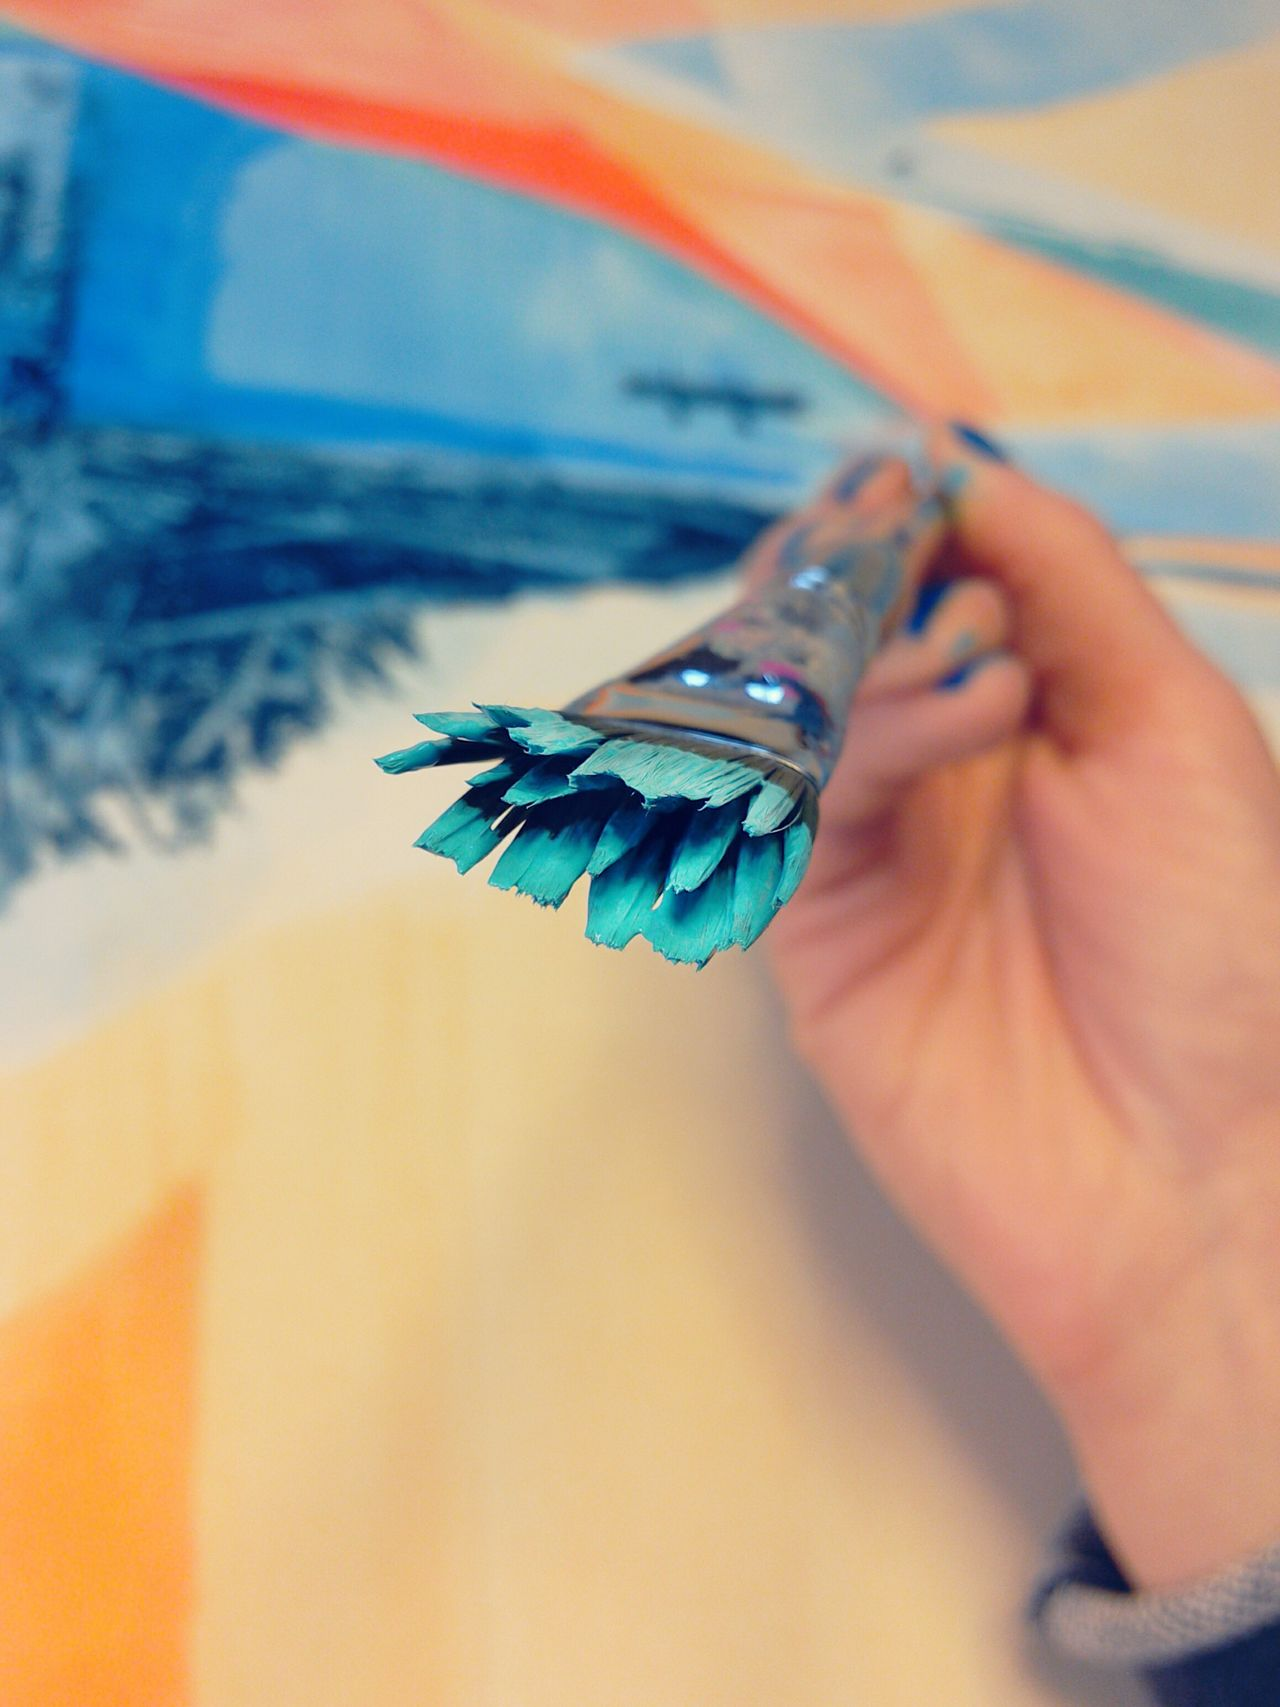 Paint Brush In Hand Painting In Progress Human Hand One Person Human Body Part Close-up One Woman Only Indoors  Blue Nails Skill  ArtWork Painting Turqoise Blue Orange Color Complementary Colors Hands At Work